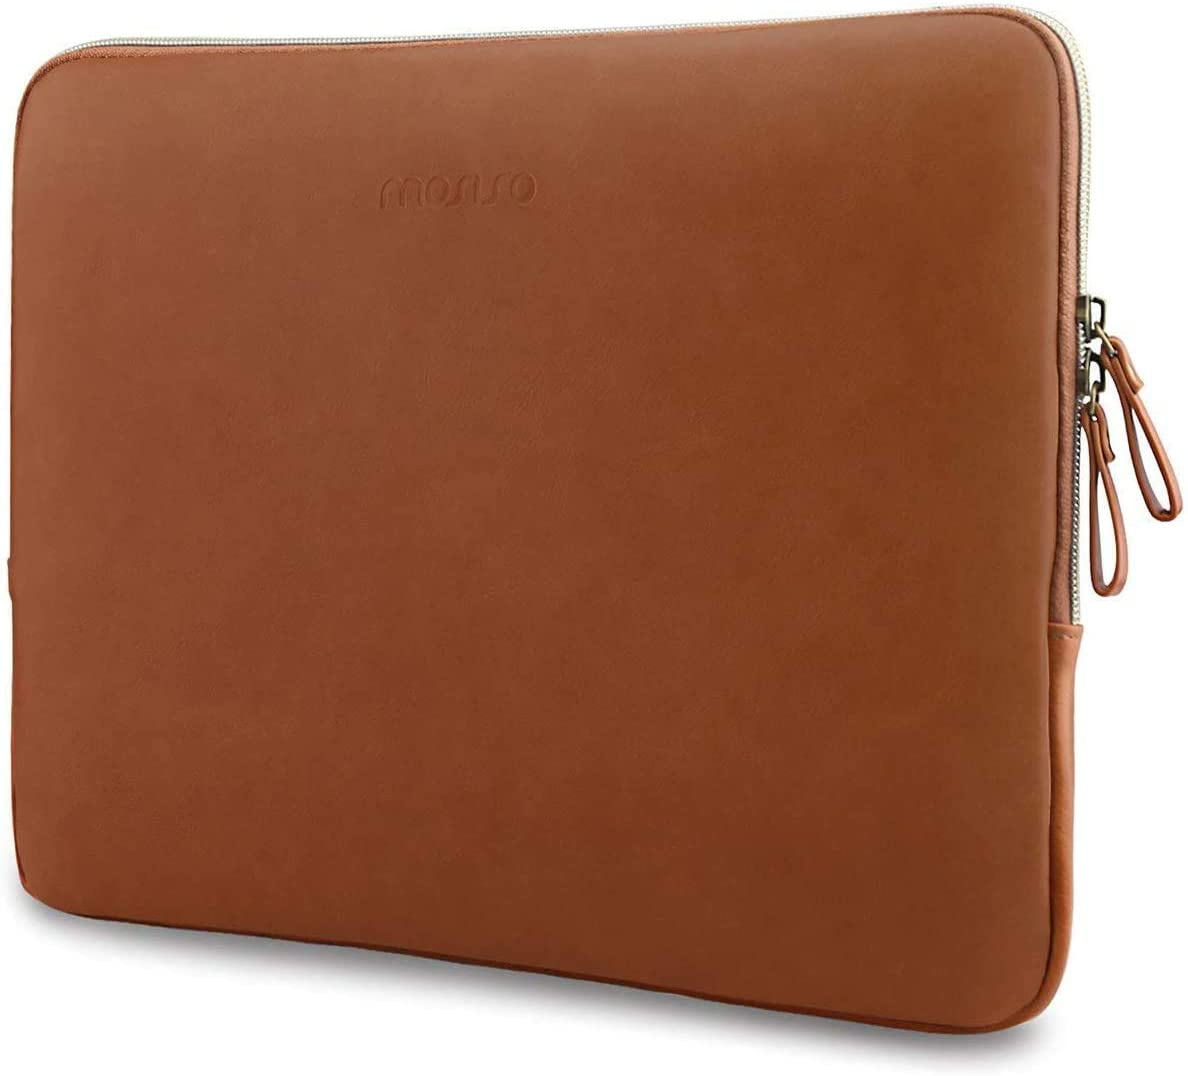 MOSISO Laptop Sleeve Compatible with 13-13.3 Inch MacBook Air/MacBook Pro Retina/2019 2018 Surface Laptop 3/2/Surface Book 2, PU Leather Super Padded Bag Waterproof Protective Case, Brown